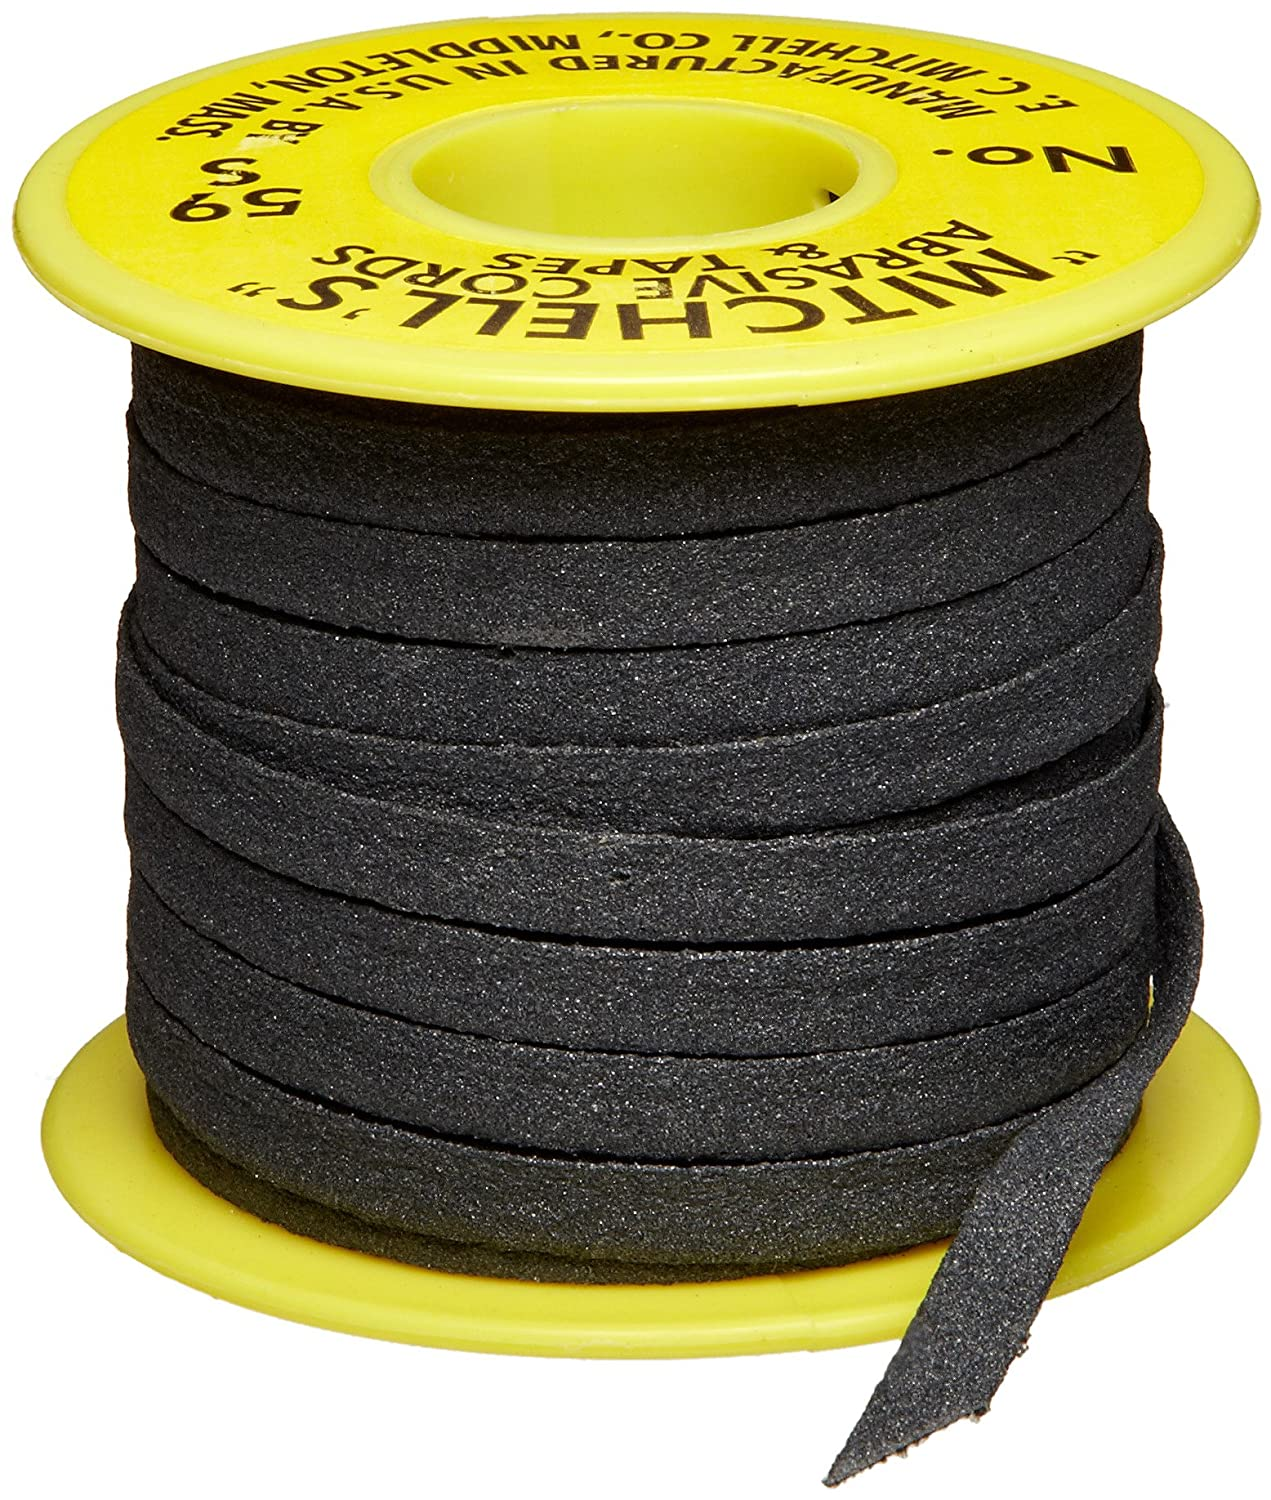 Mitchell Abrasives 59-S Flat Abrasive Tape, Silicon Carbide 150 Grit 1/4